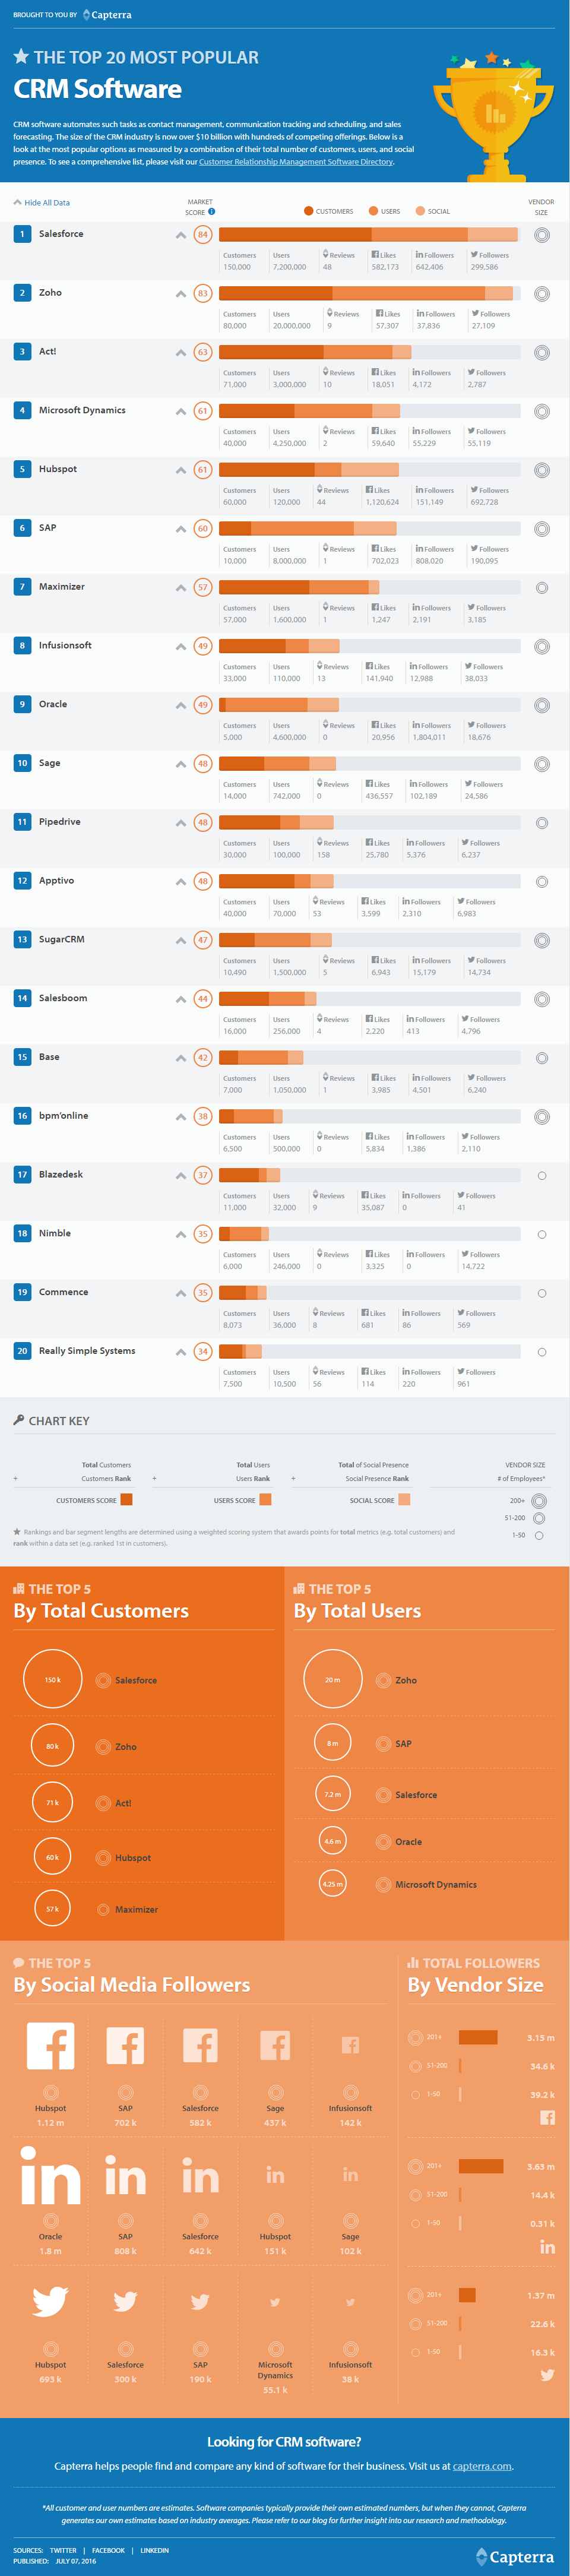 Top CRM Solutions